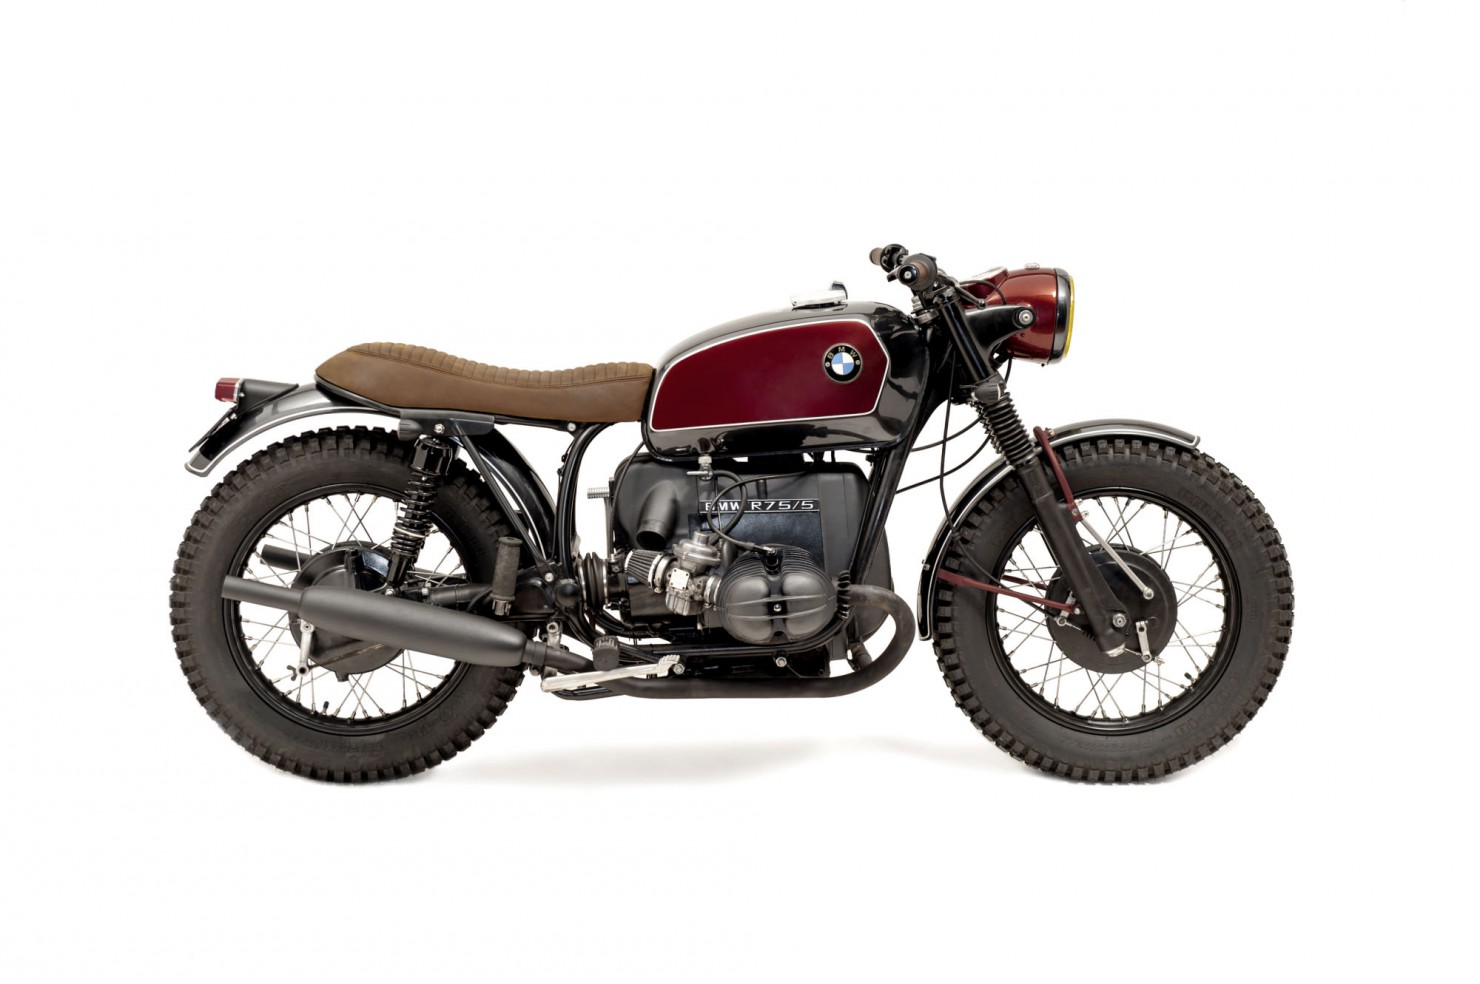 BMW-R755-Motorcycle-5